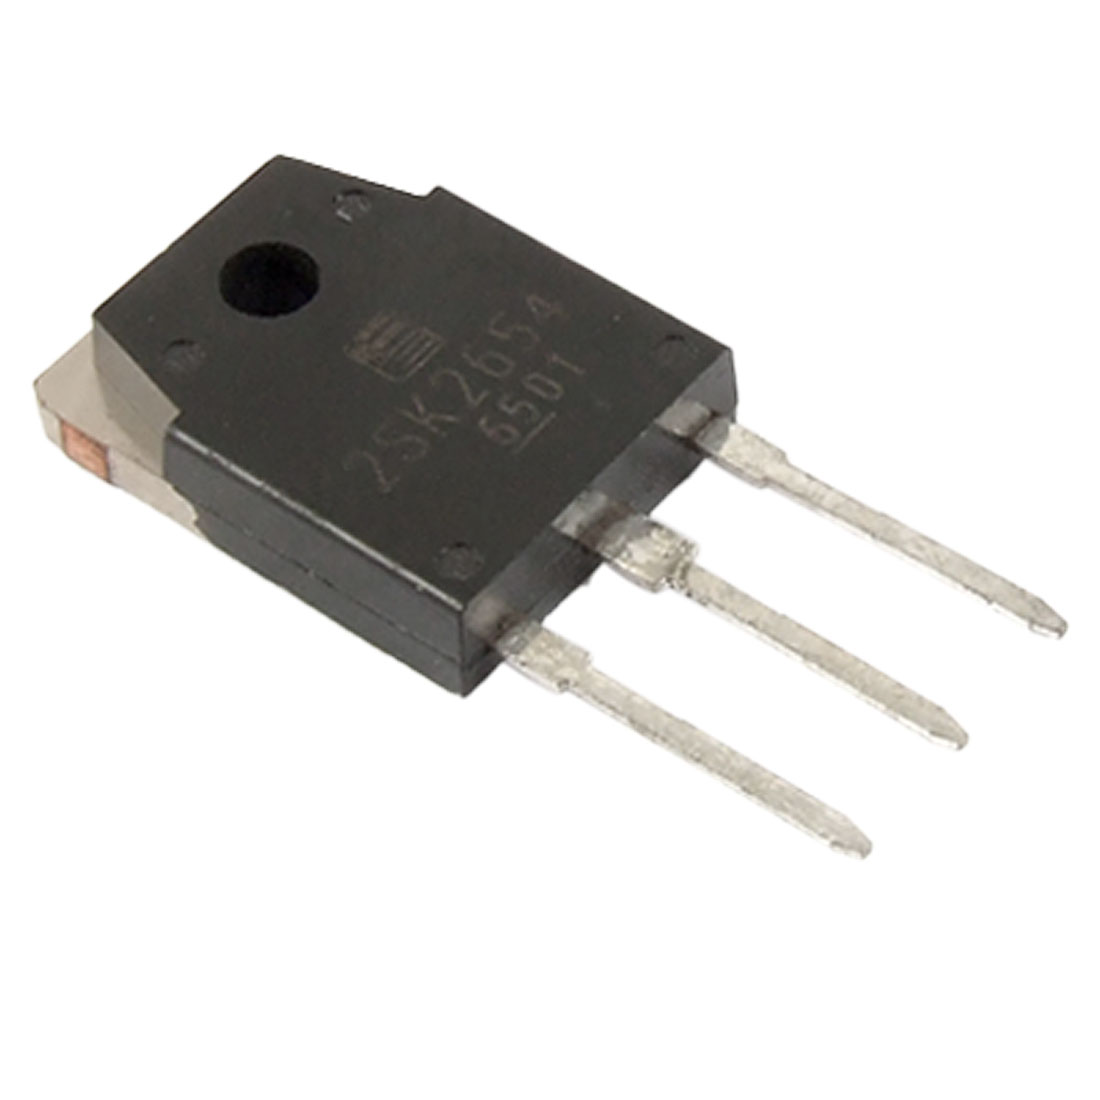 2SK2654 N Channel MOSFET Transistor High Speed Switching 8A 900V